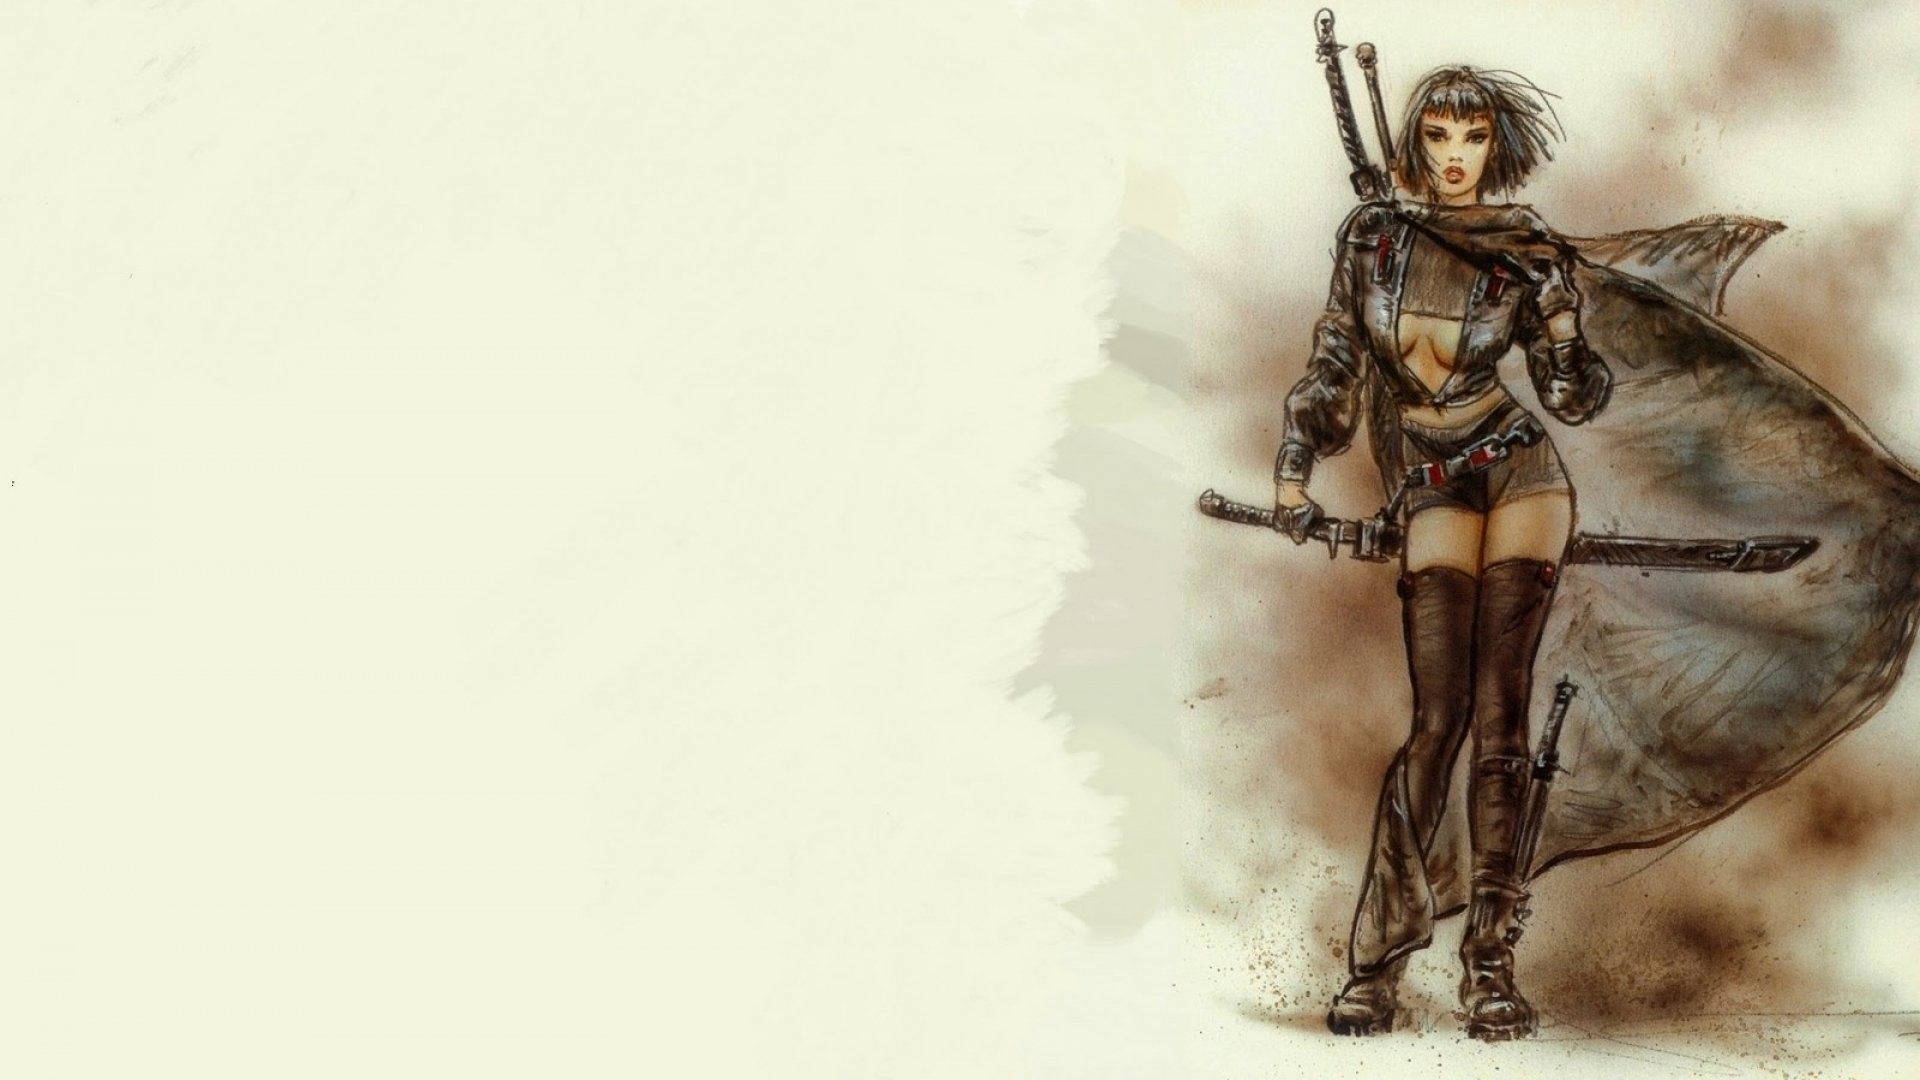 1920x1080 LUIS ROYO fantasy warrior painting art sexy babe wallpaper |  |  407617 | WallpaperUP